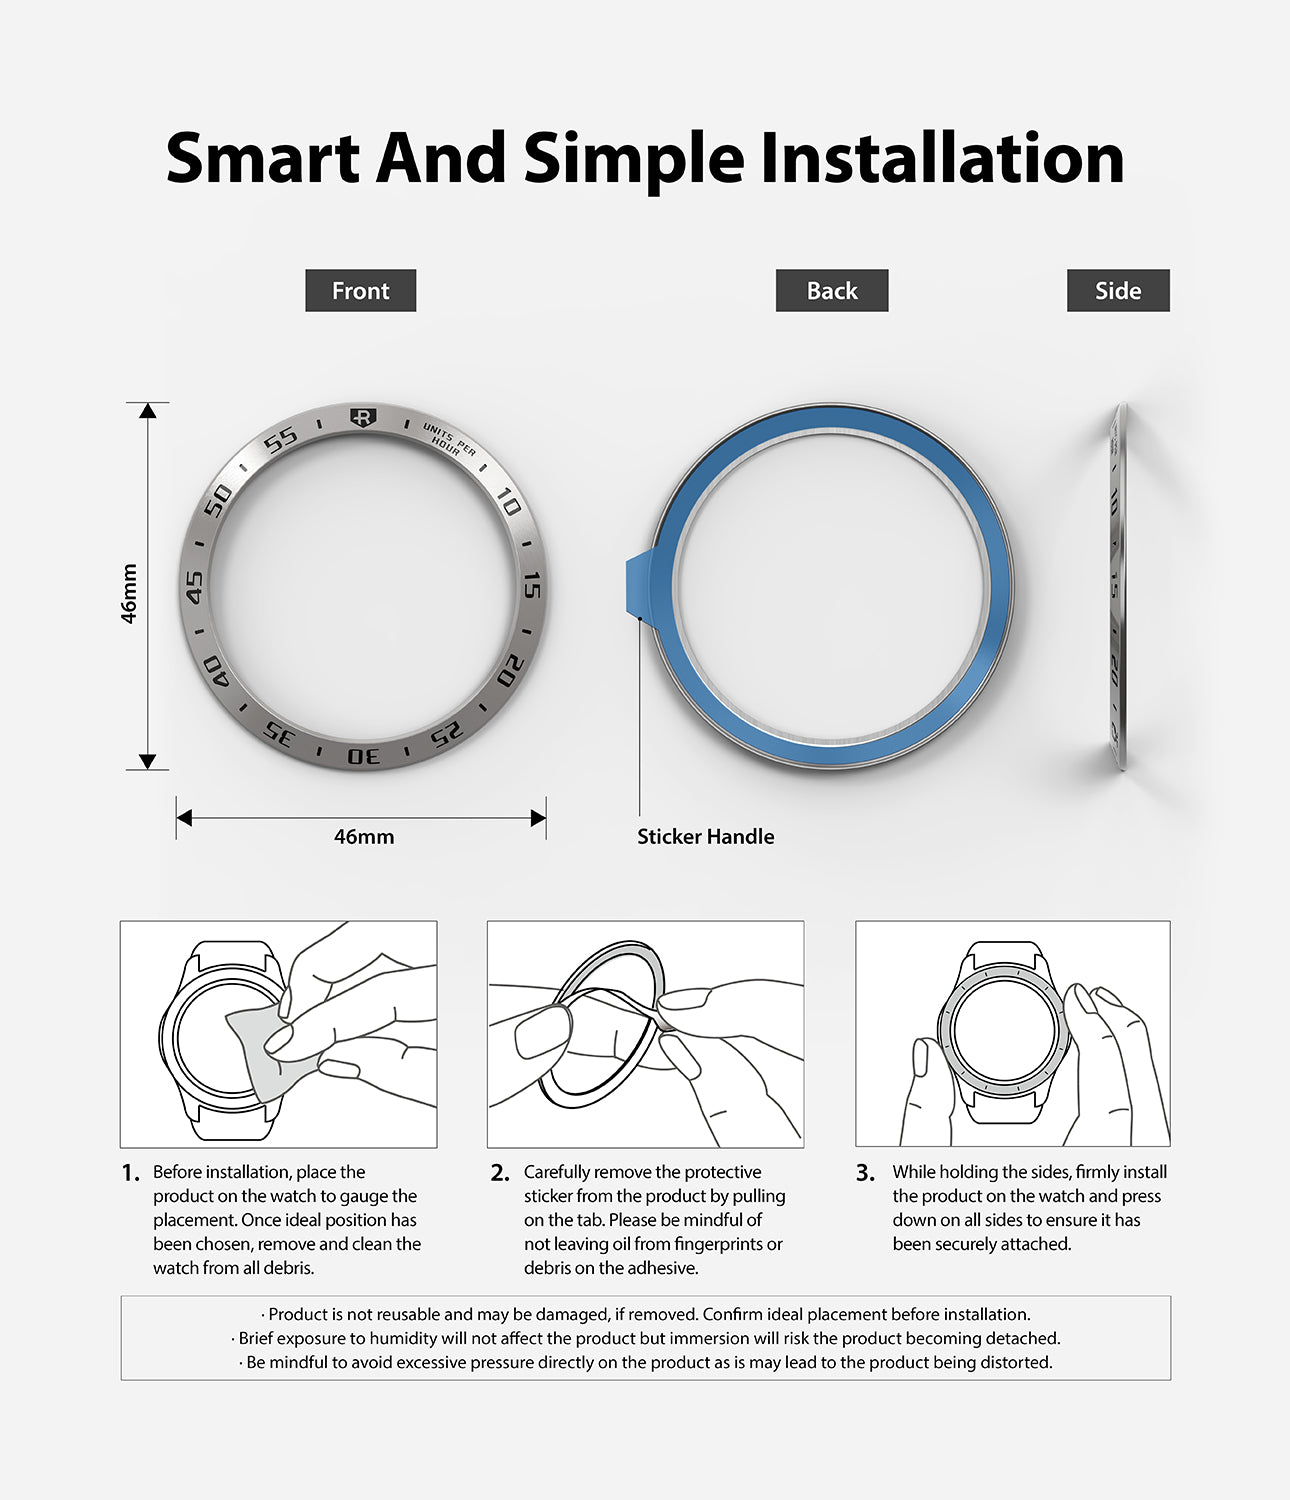 smart and simple installation guide